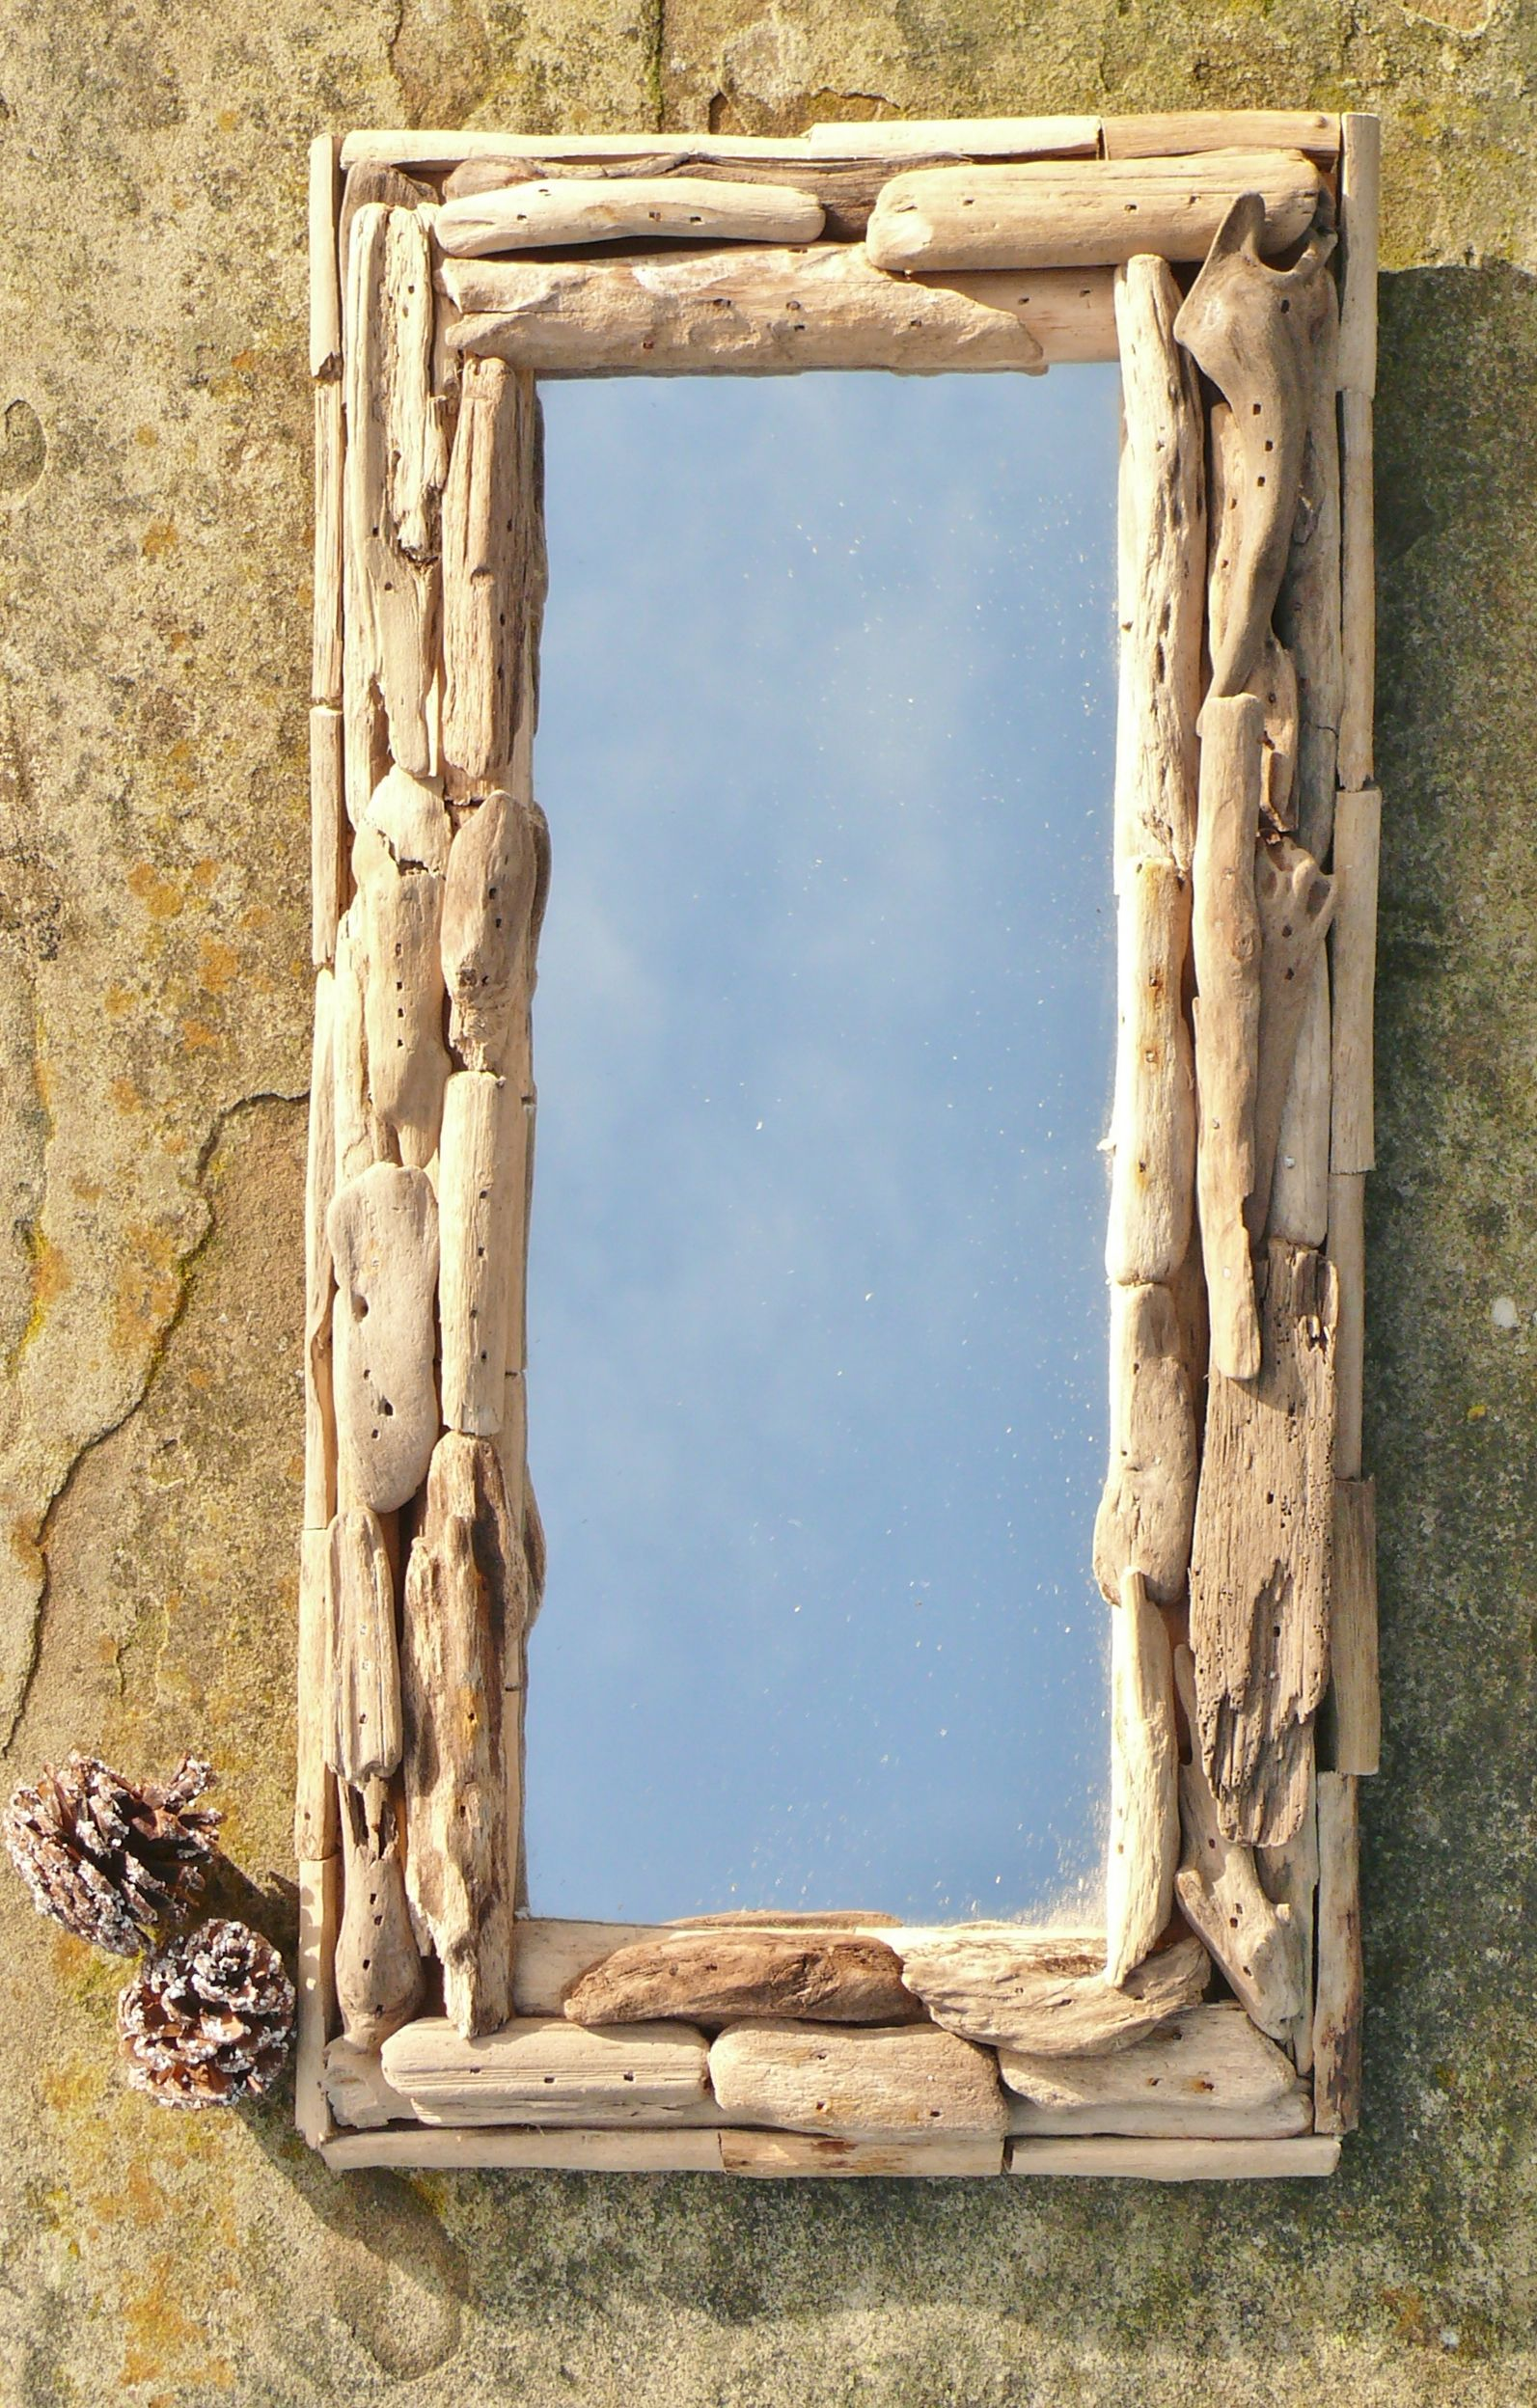 Charming driftwood mirror to fill a nook or cranny in your home